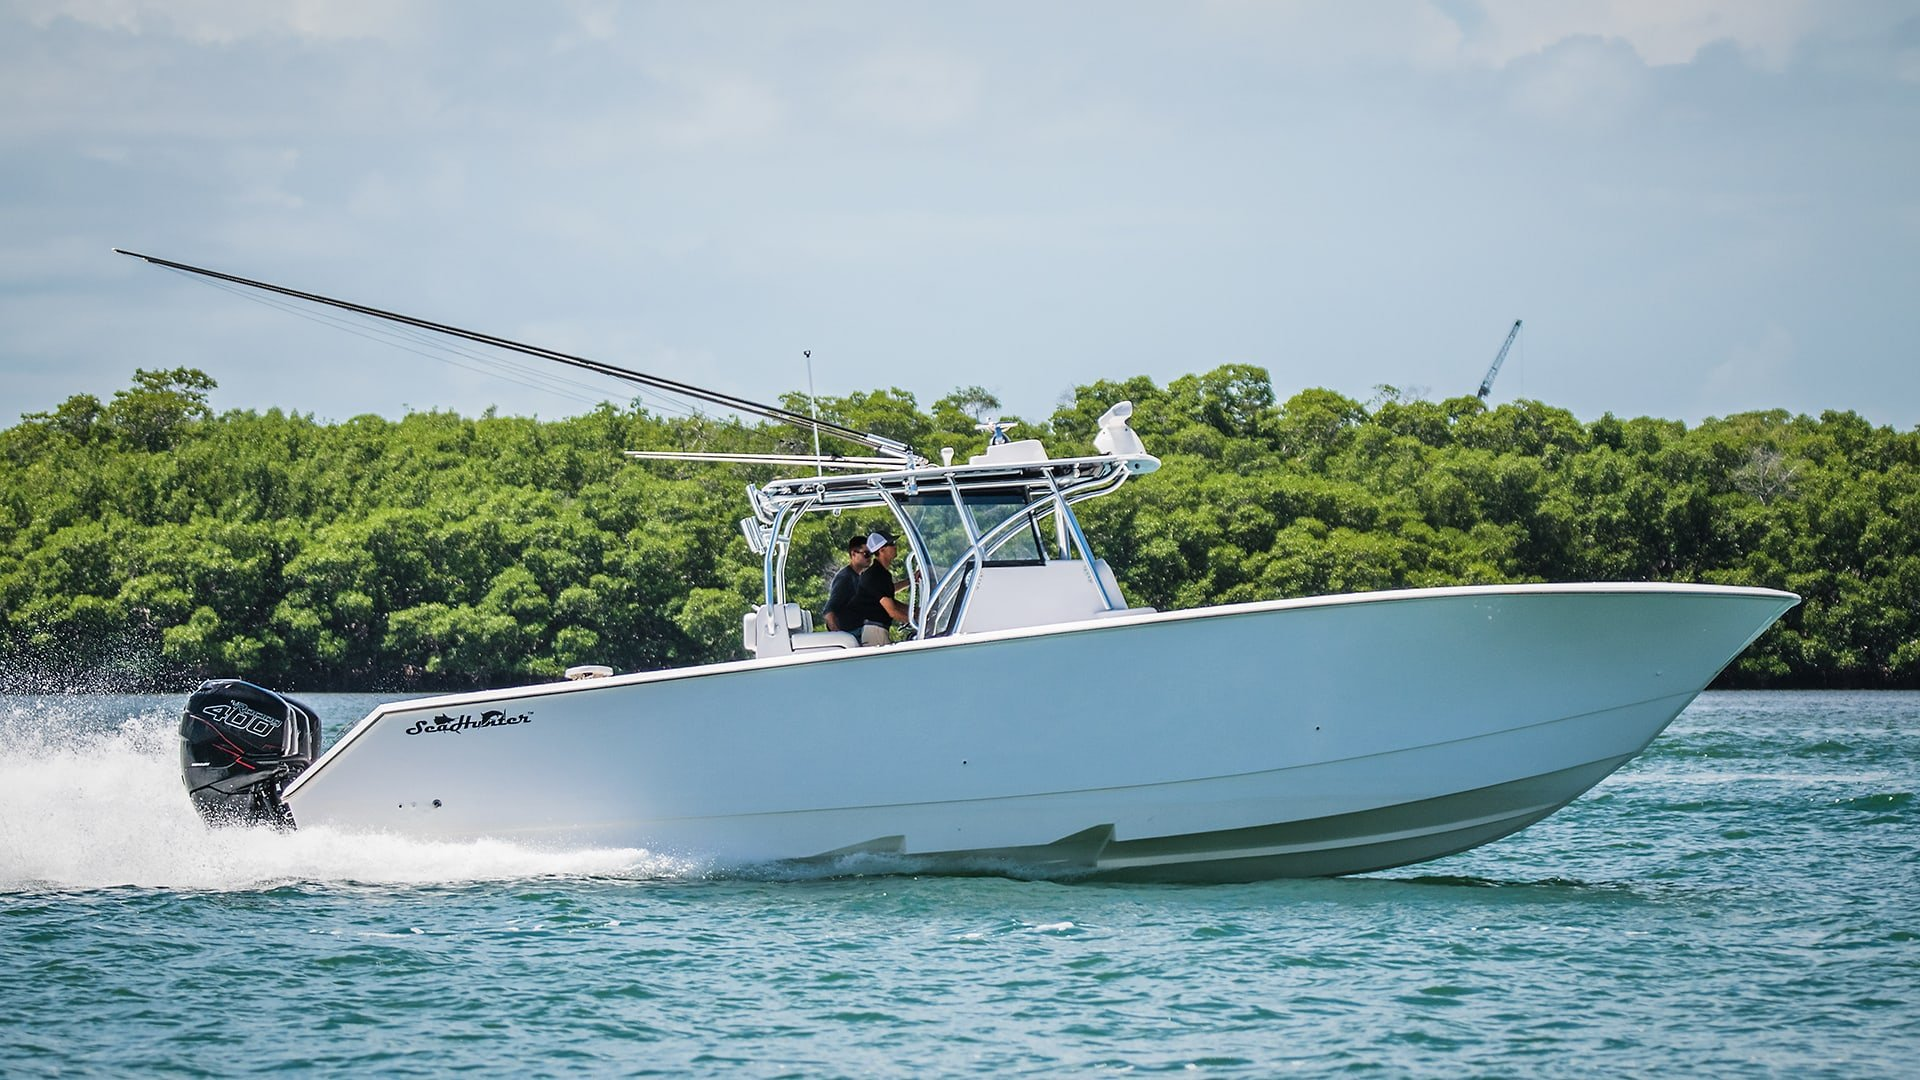 Seahunter Fishing Boat with quad Mercury Outboards